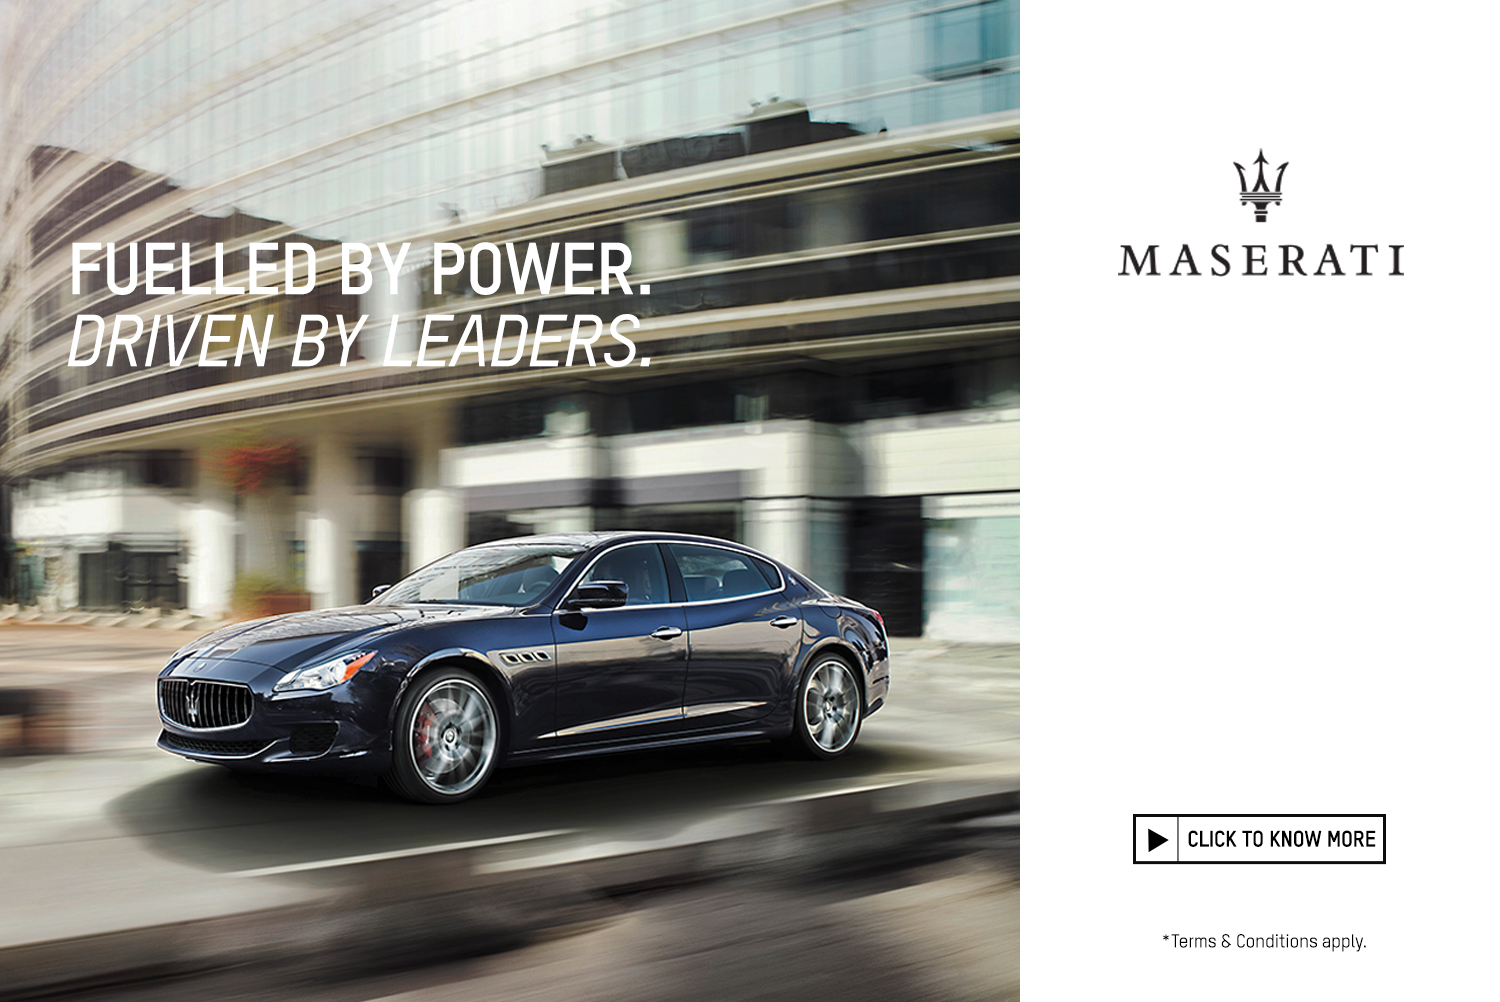 <p>The Maserati Quattroporte is a true reflection of the passion with which every engineer, technician and specialist designs, tests, and refines each individual vehicle as if it were their own.</p>